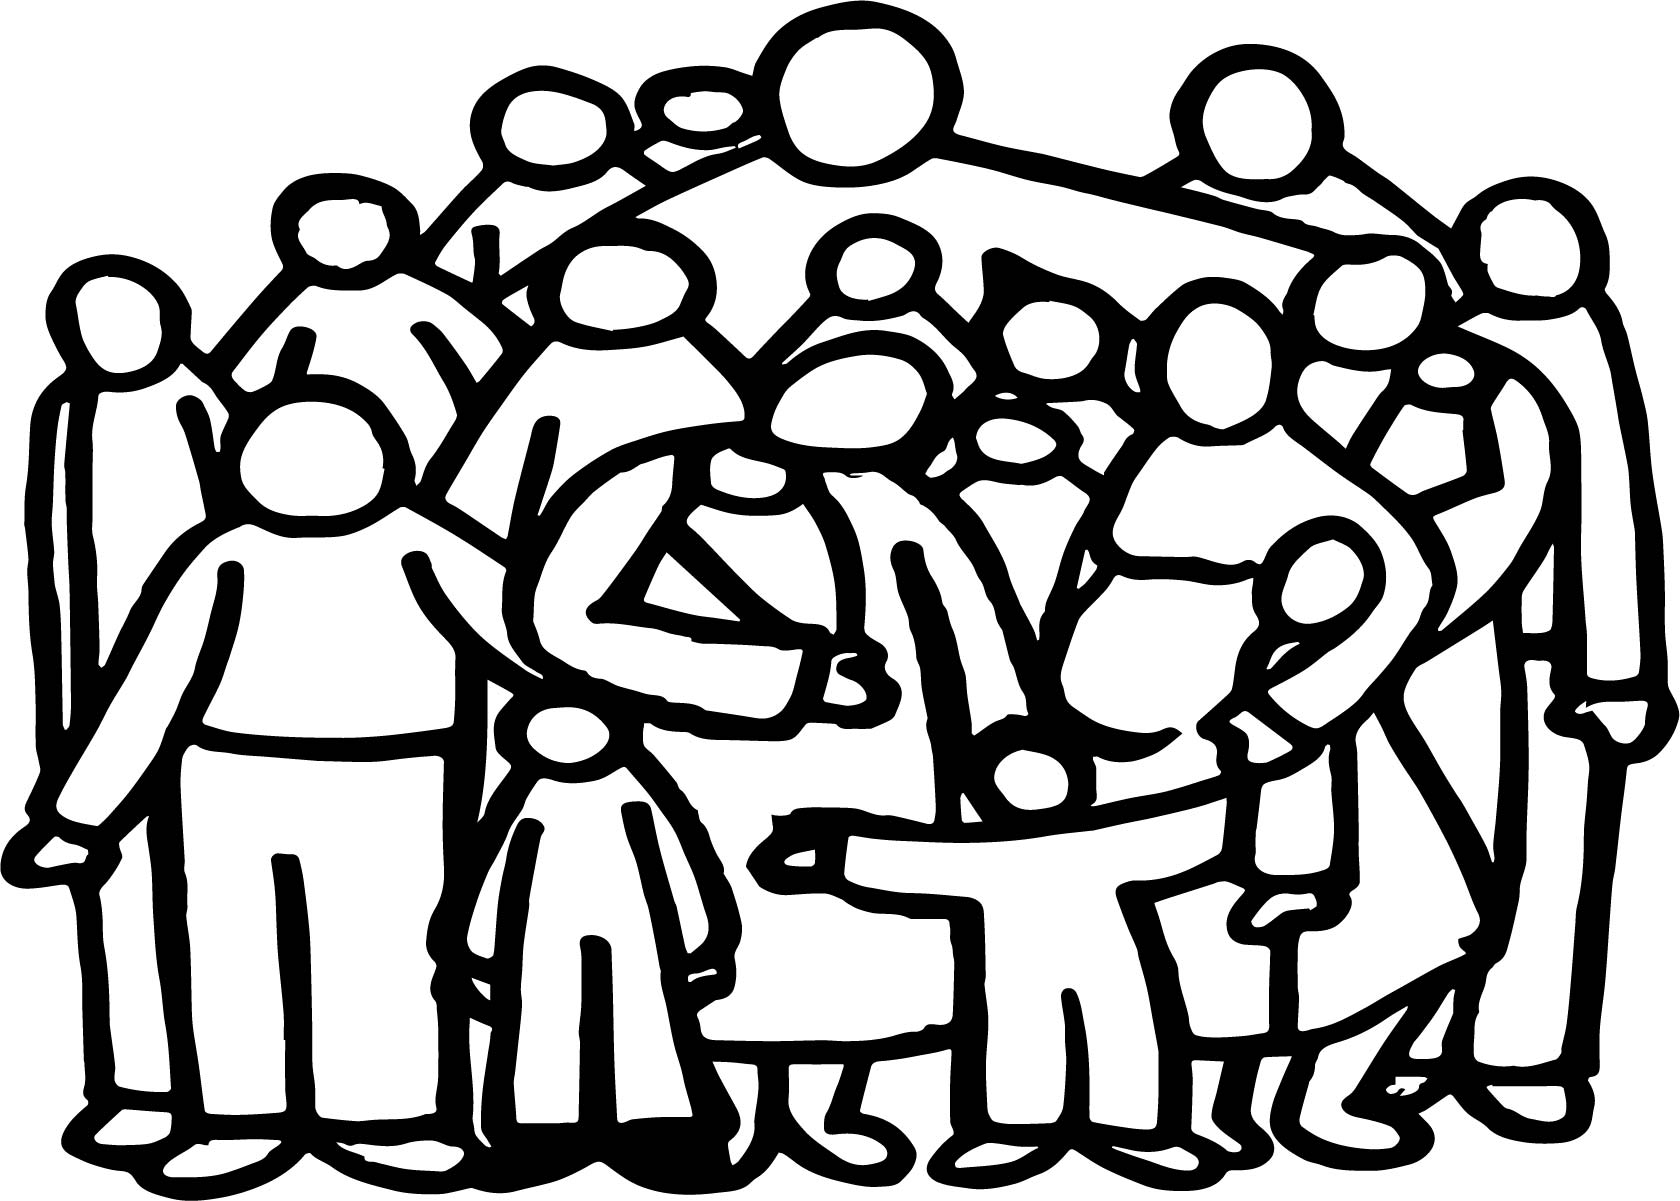 Church Family People Outline Coloring Page